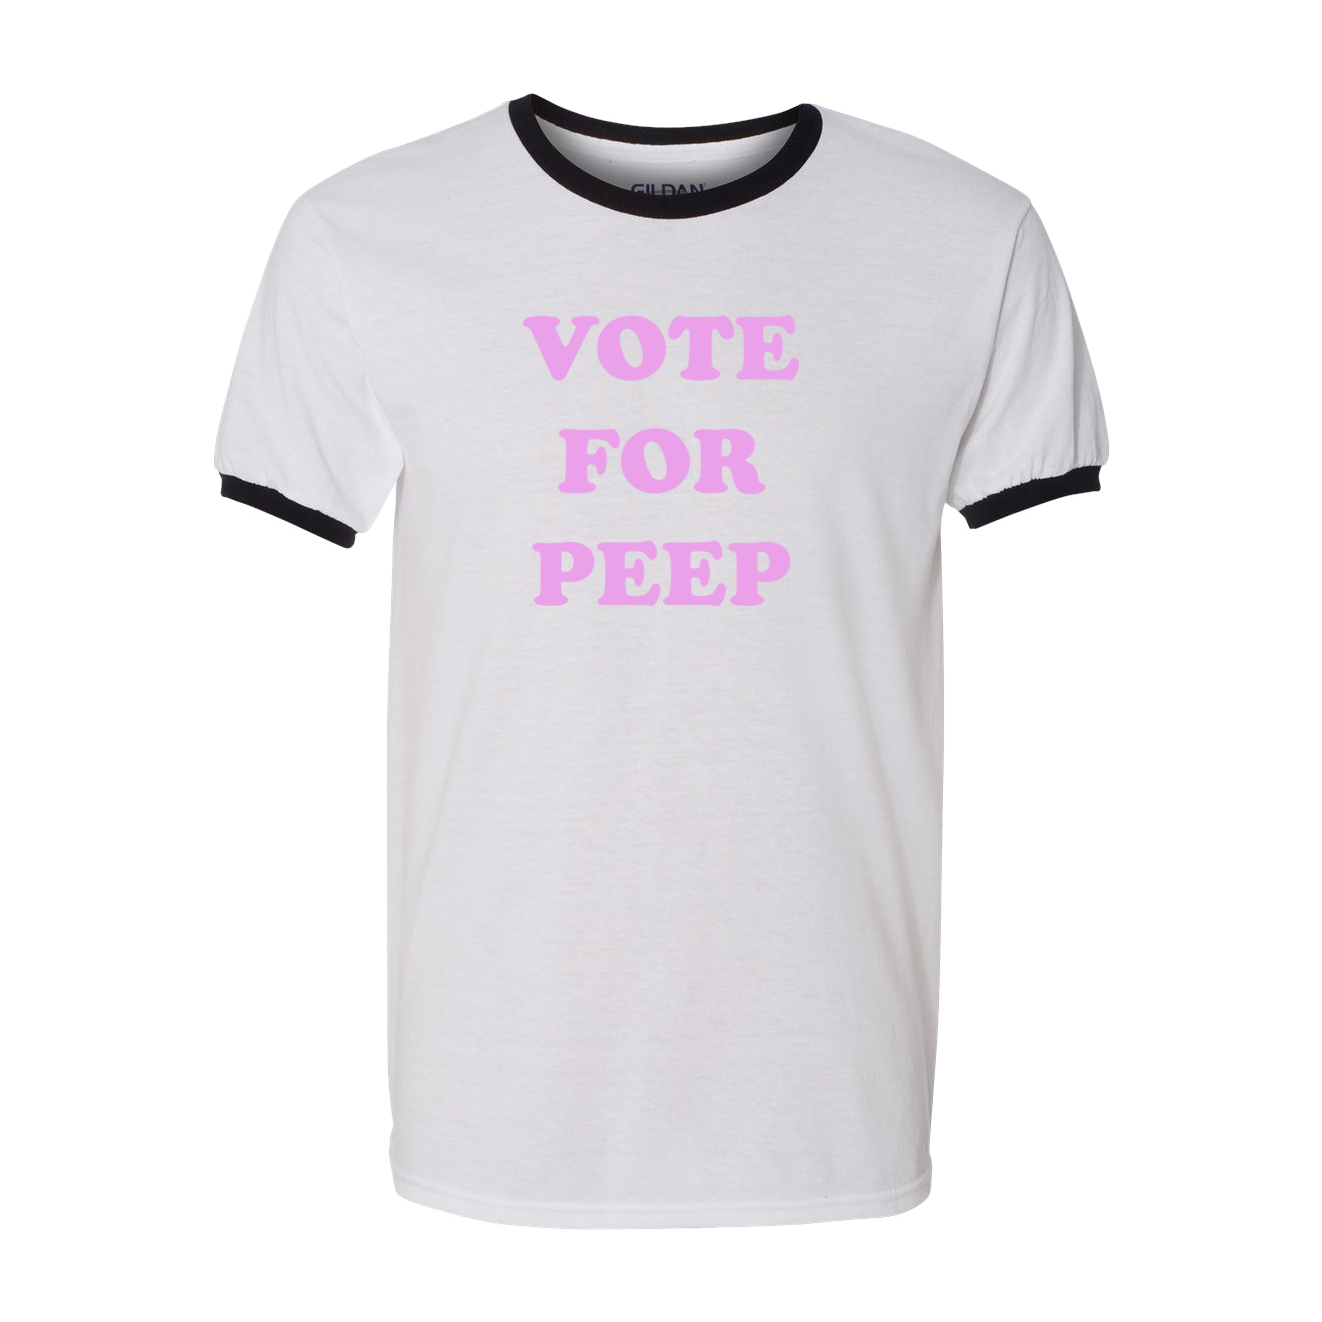 VOTE FOR PEEP SHIRT COWYS EDITION [Includes COWYS2 Digital Download]